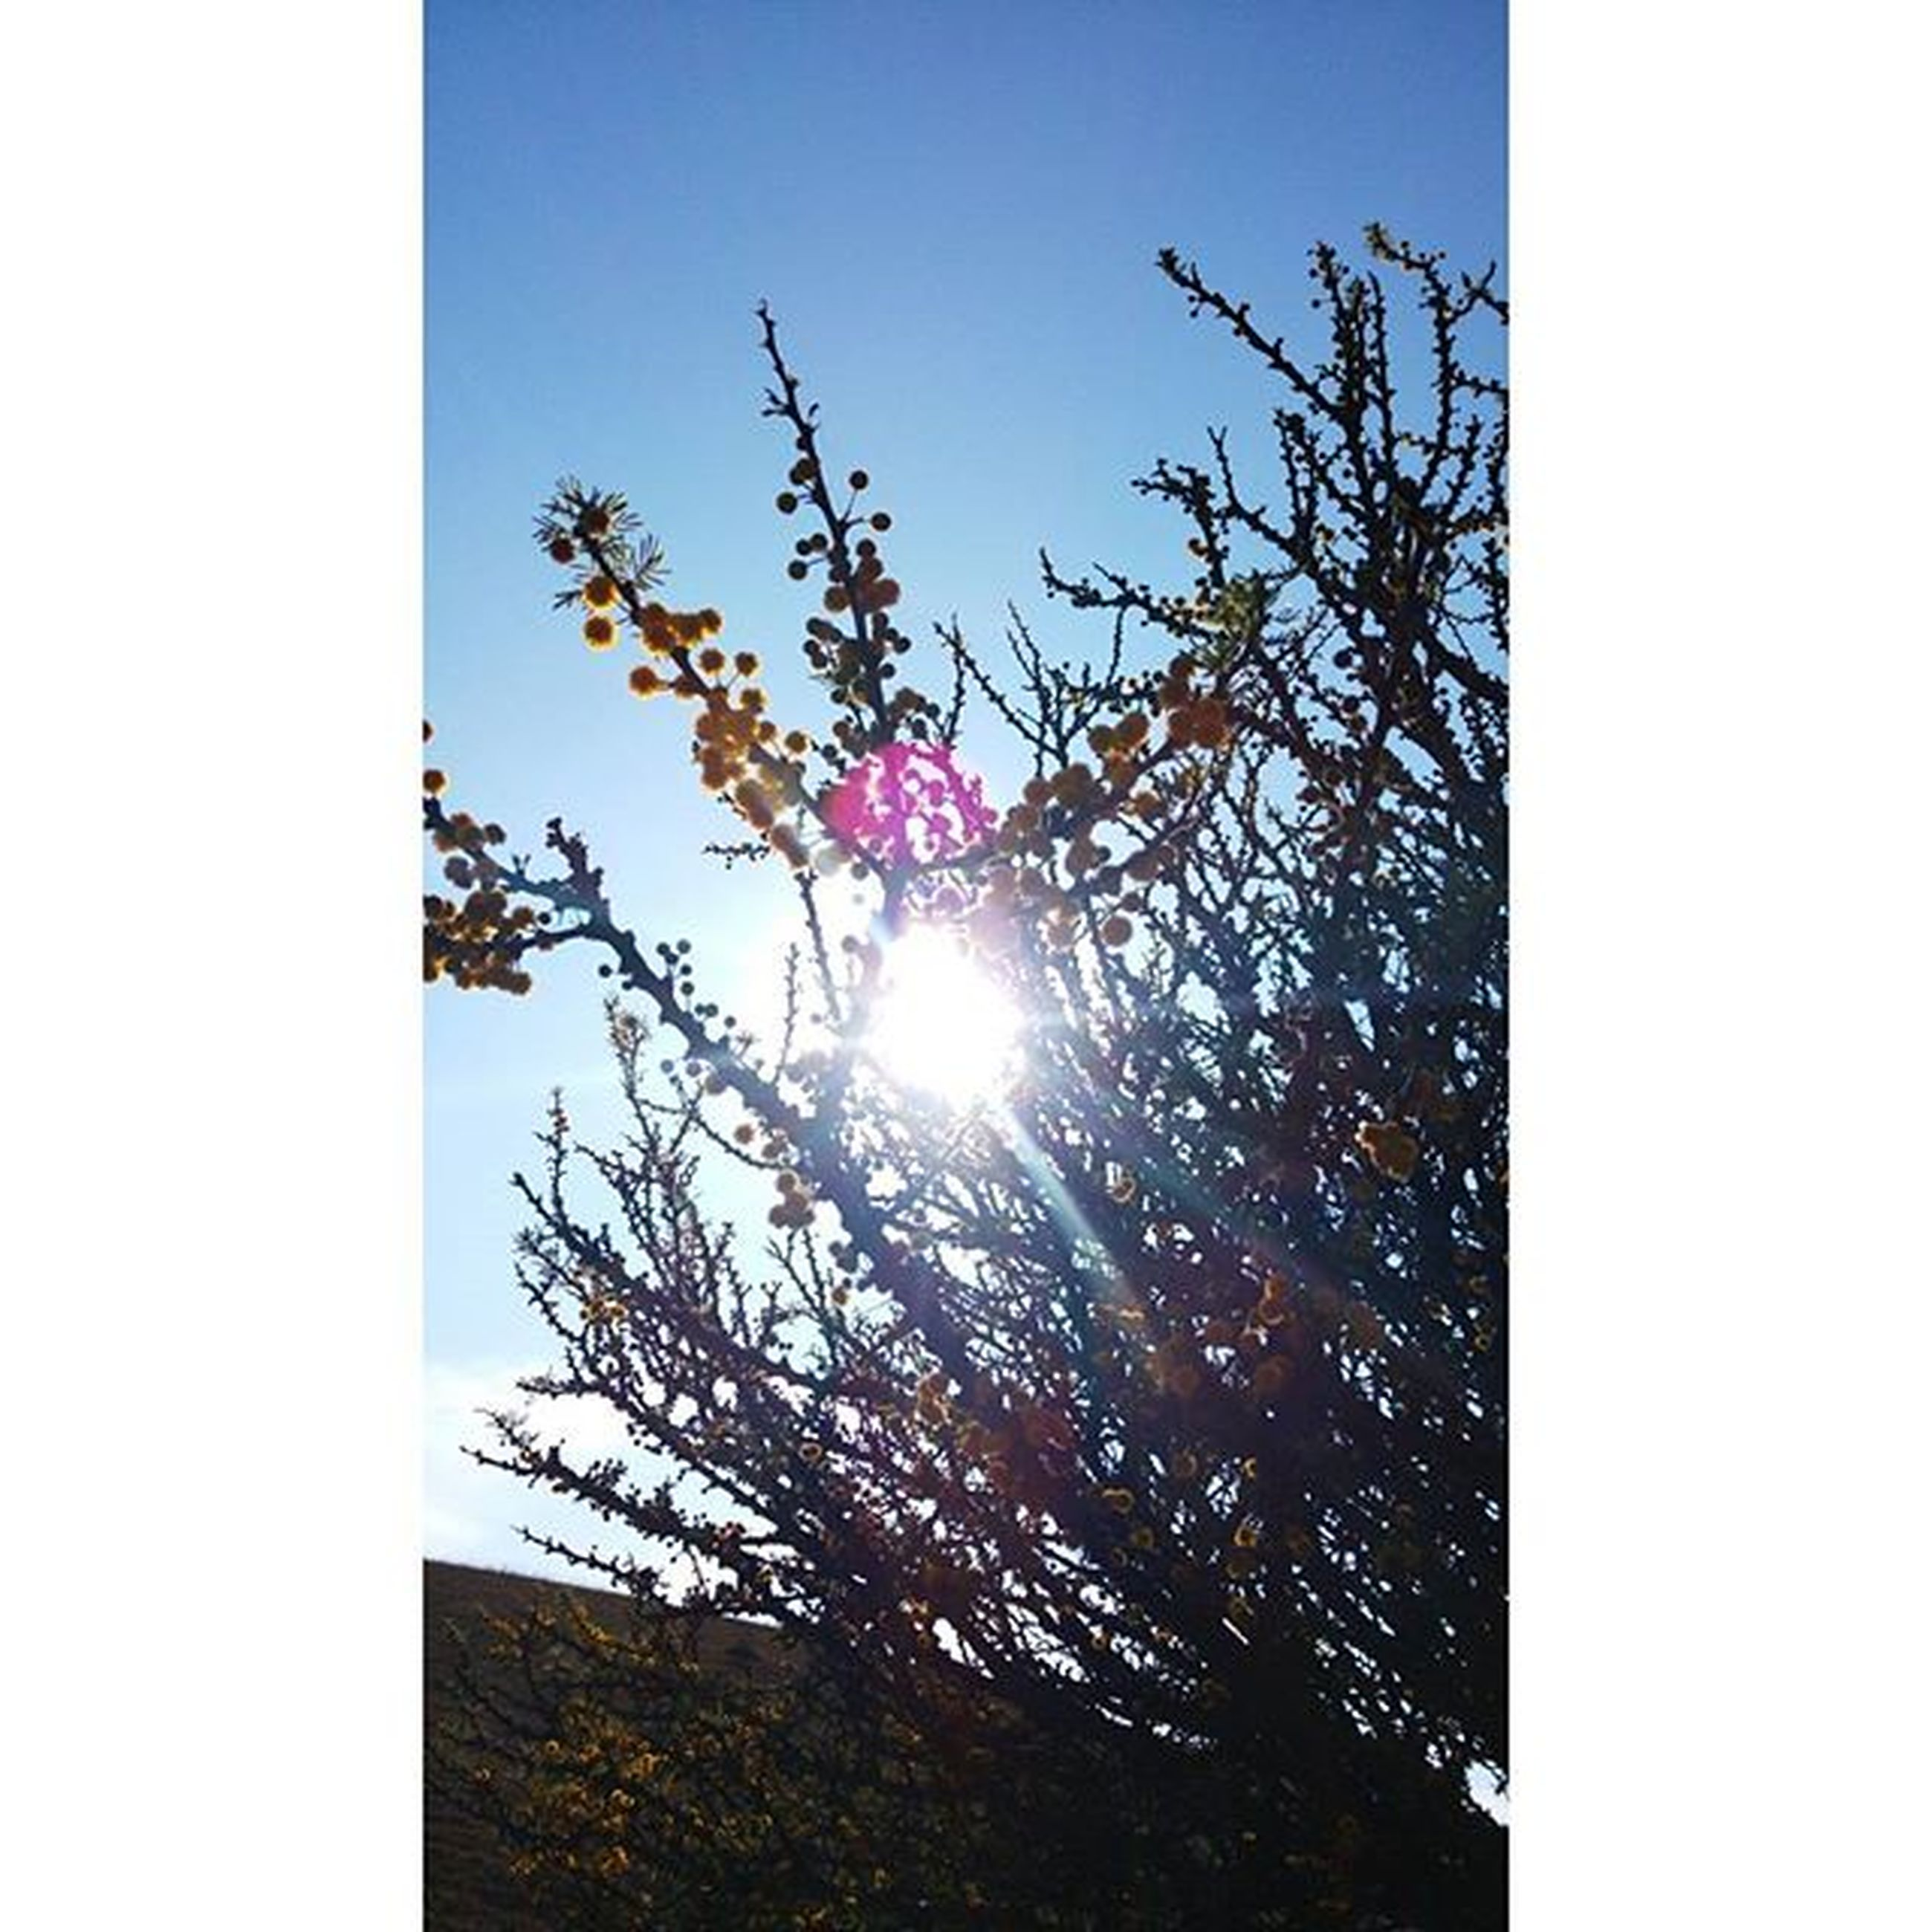 sun, transfer print, low angle view, clear sky, tree, sunbeam, sunlight, auto post production filter, lens flare, silhouette, branch, growth, sky, nature, beauty in nature, no people, outdoors, bare tree, bright, back lit